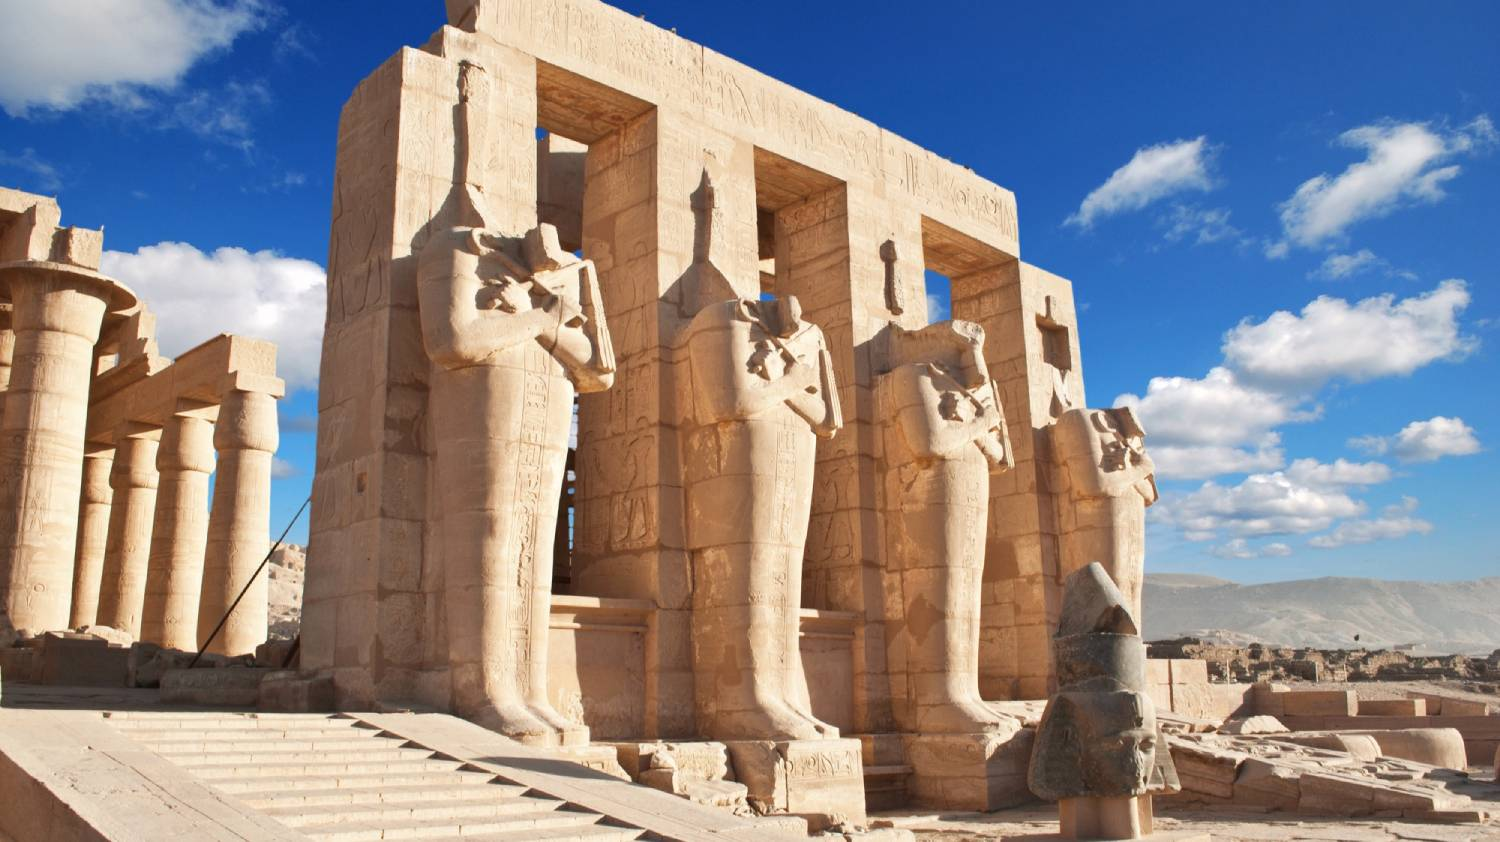 Ramesseum (Mortuary Temple of Ramses II) - Things To Do In Luxor